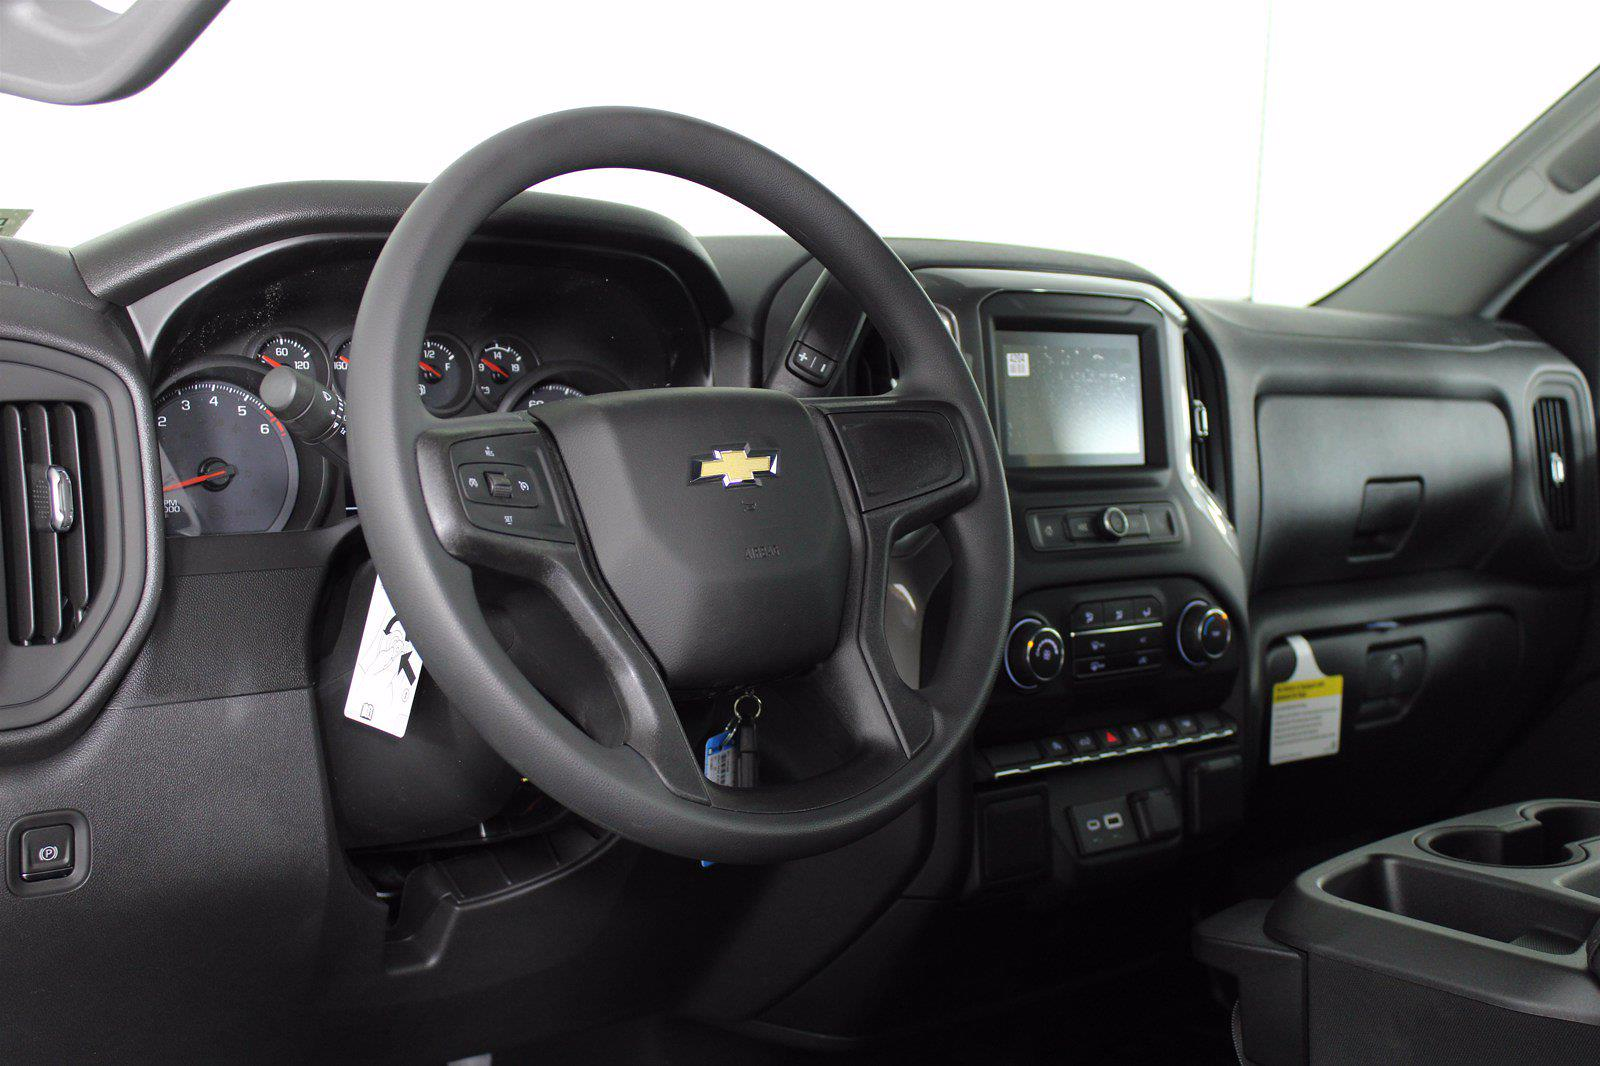 2021 Chevrolet Silverado 1500 Regular Cab 4x2, Pickup #D110765 - photo 10